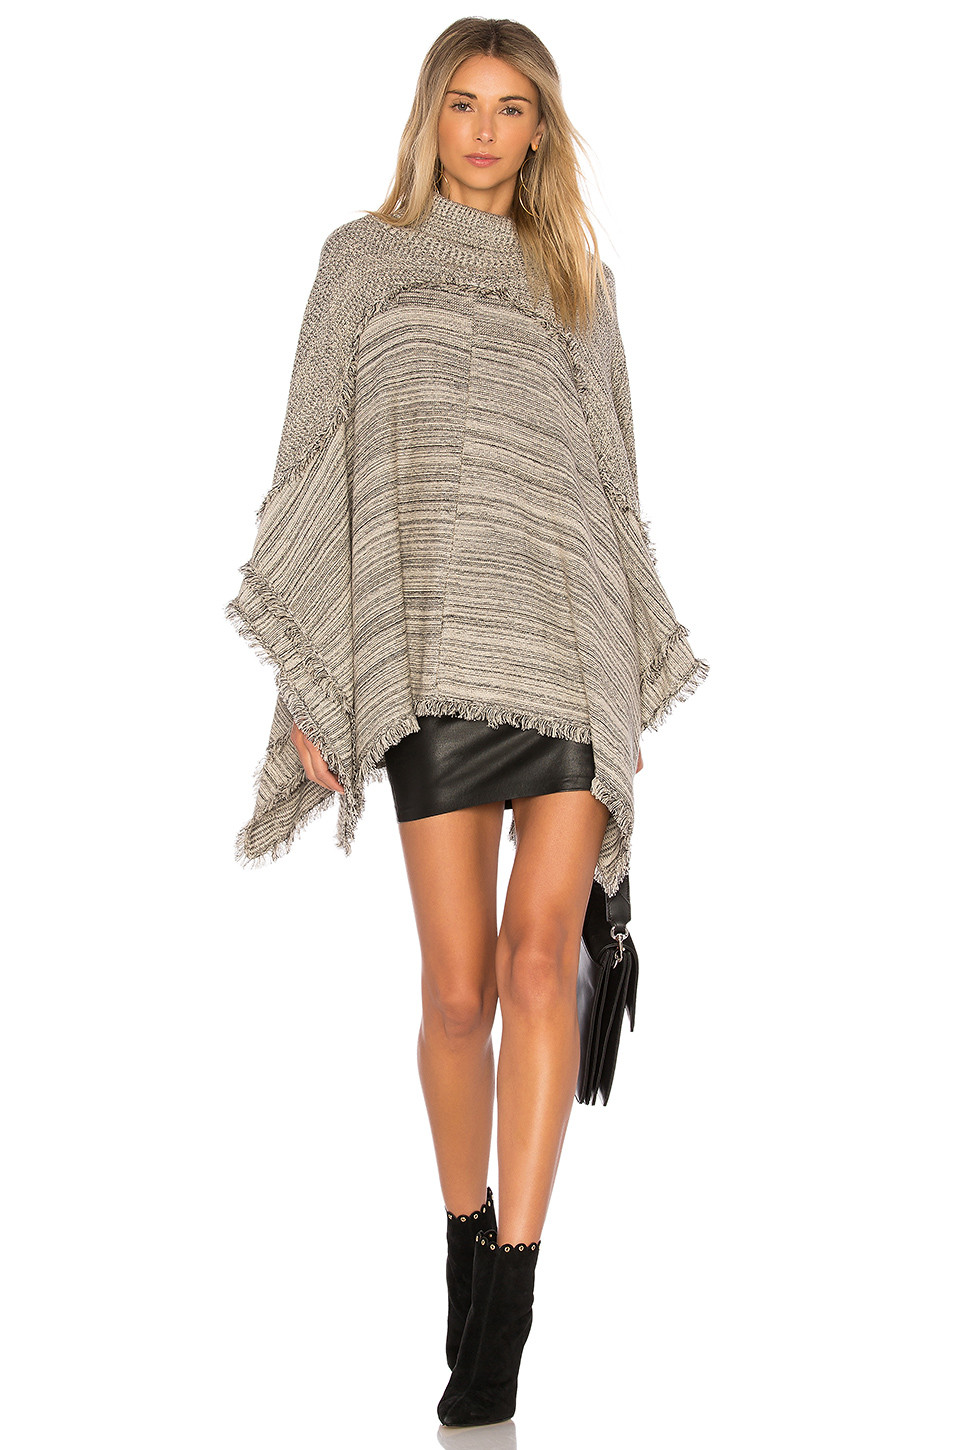 MICHAEL STARS Michael Stars Totally Twisted Poncho $88